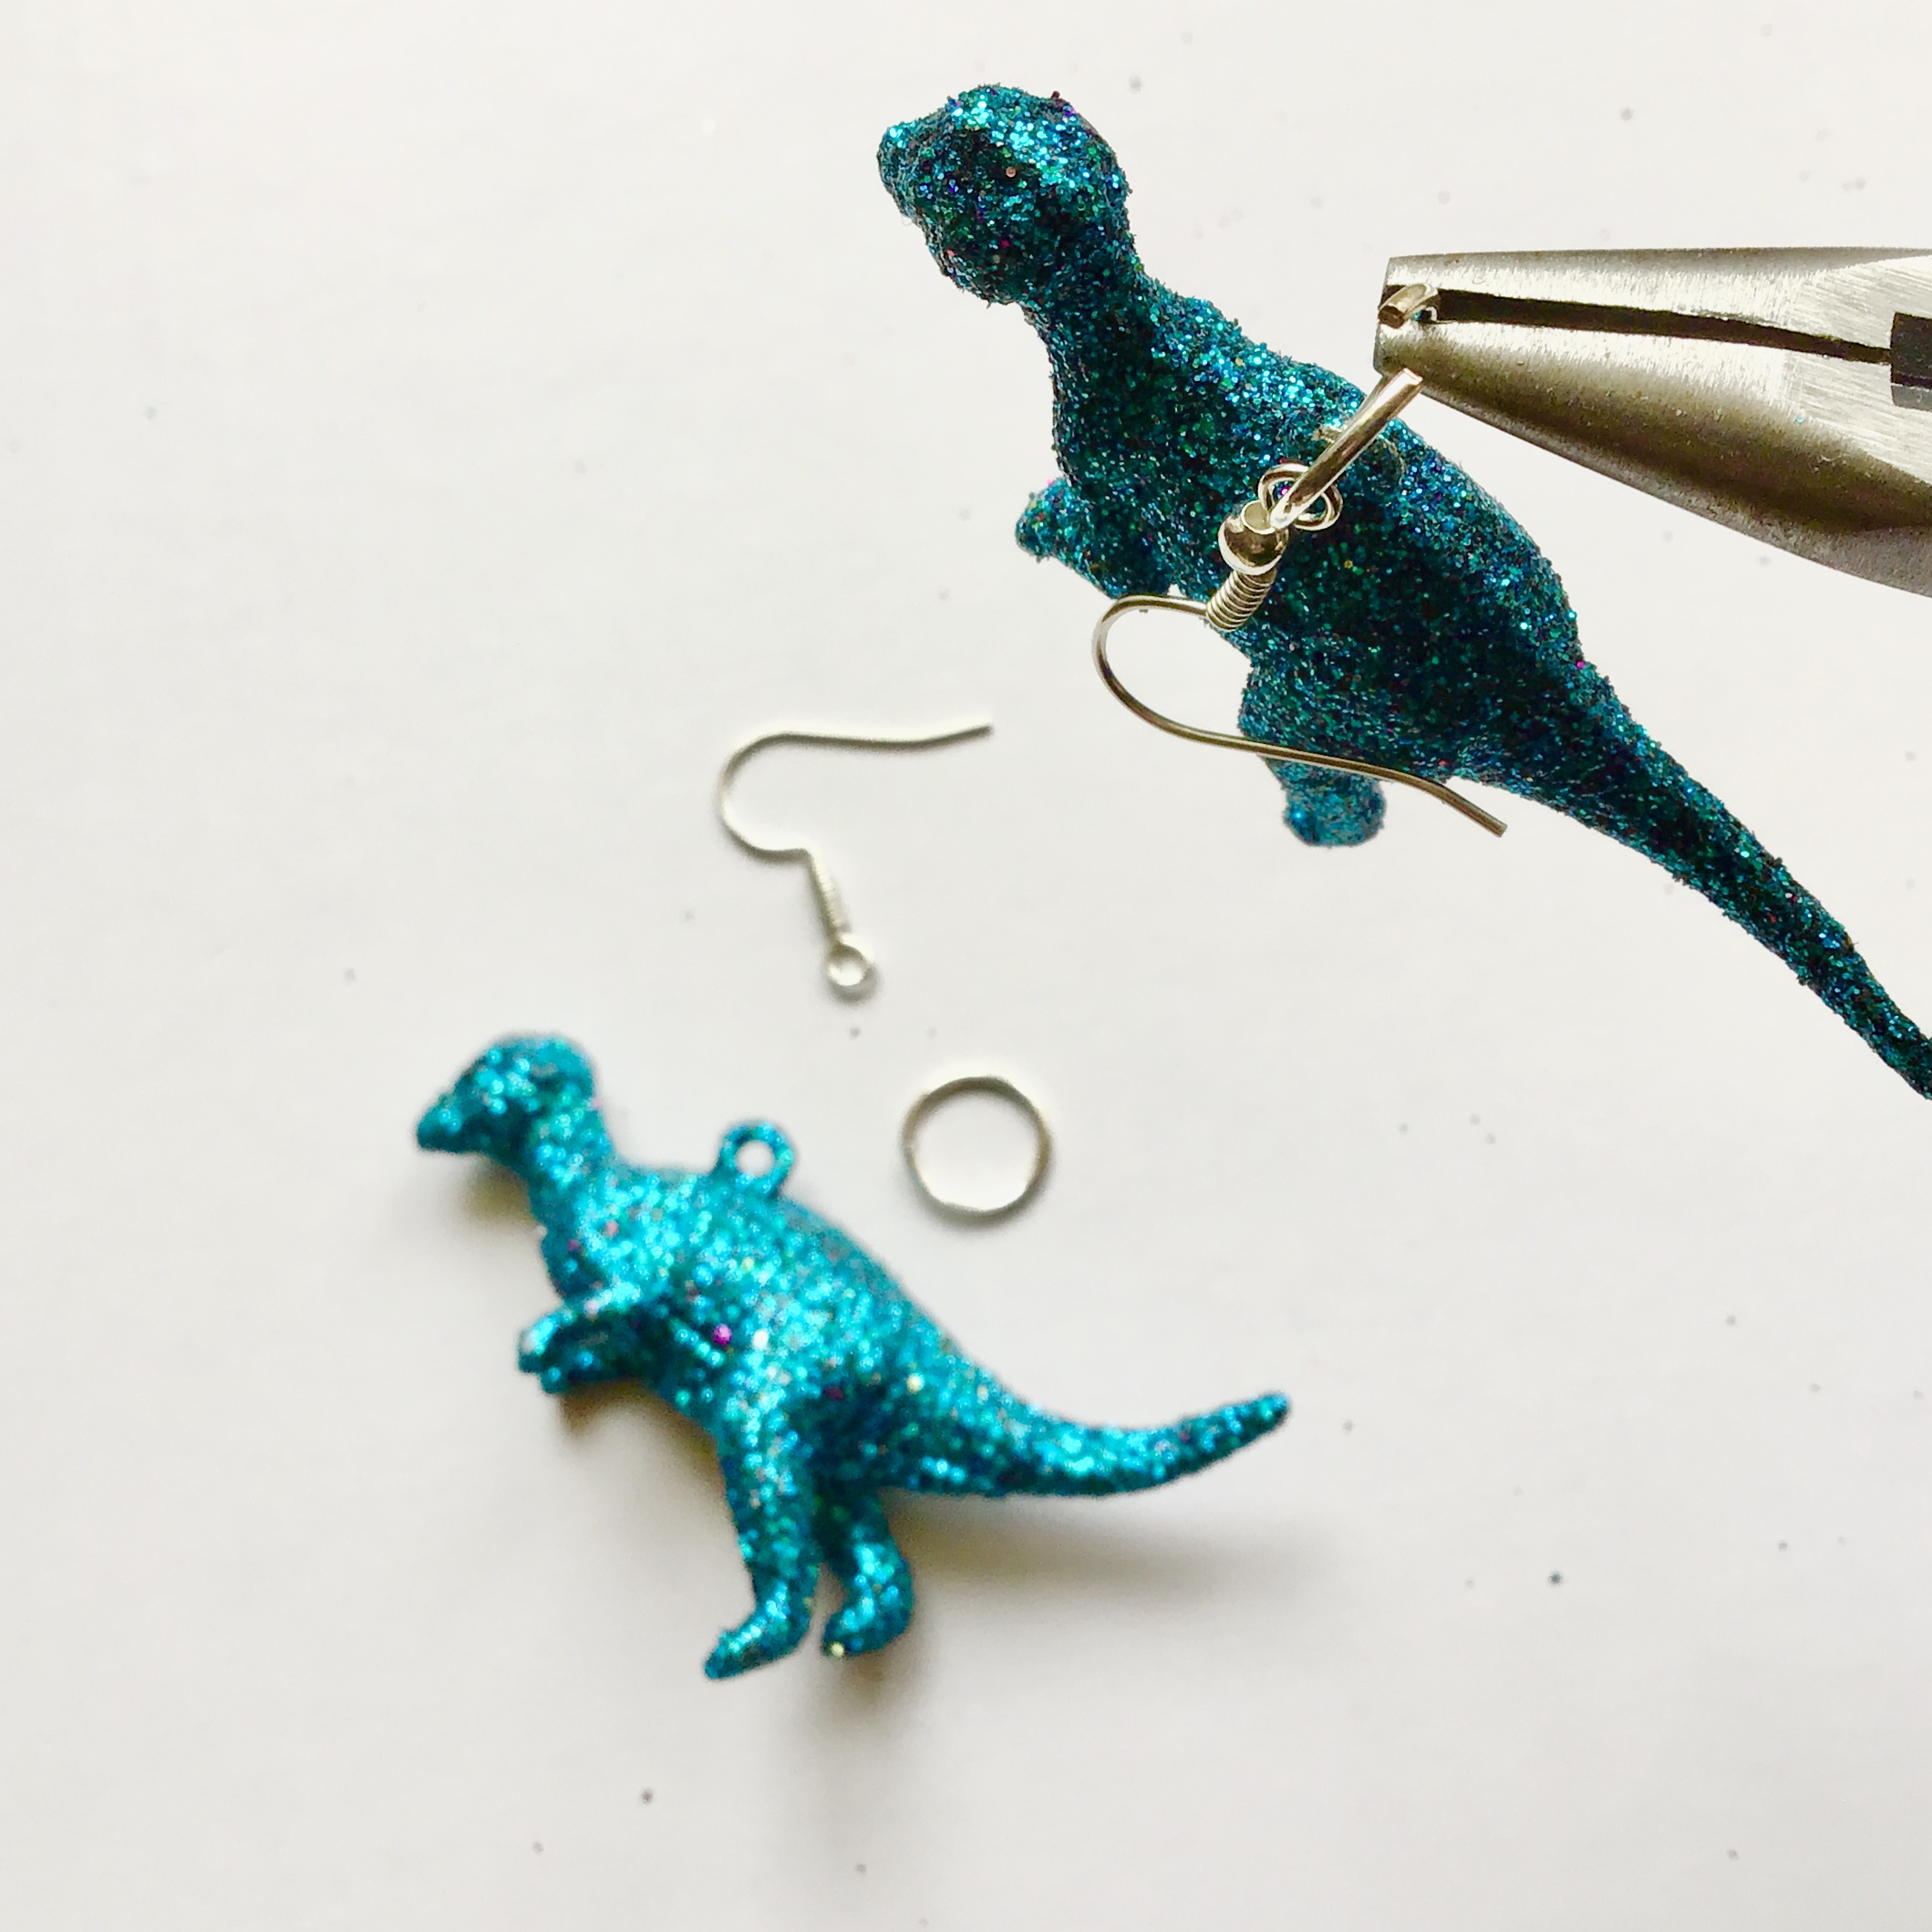 Glitter Dinosaur Earrings DIY - Step Two